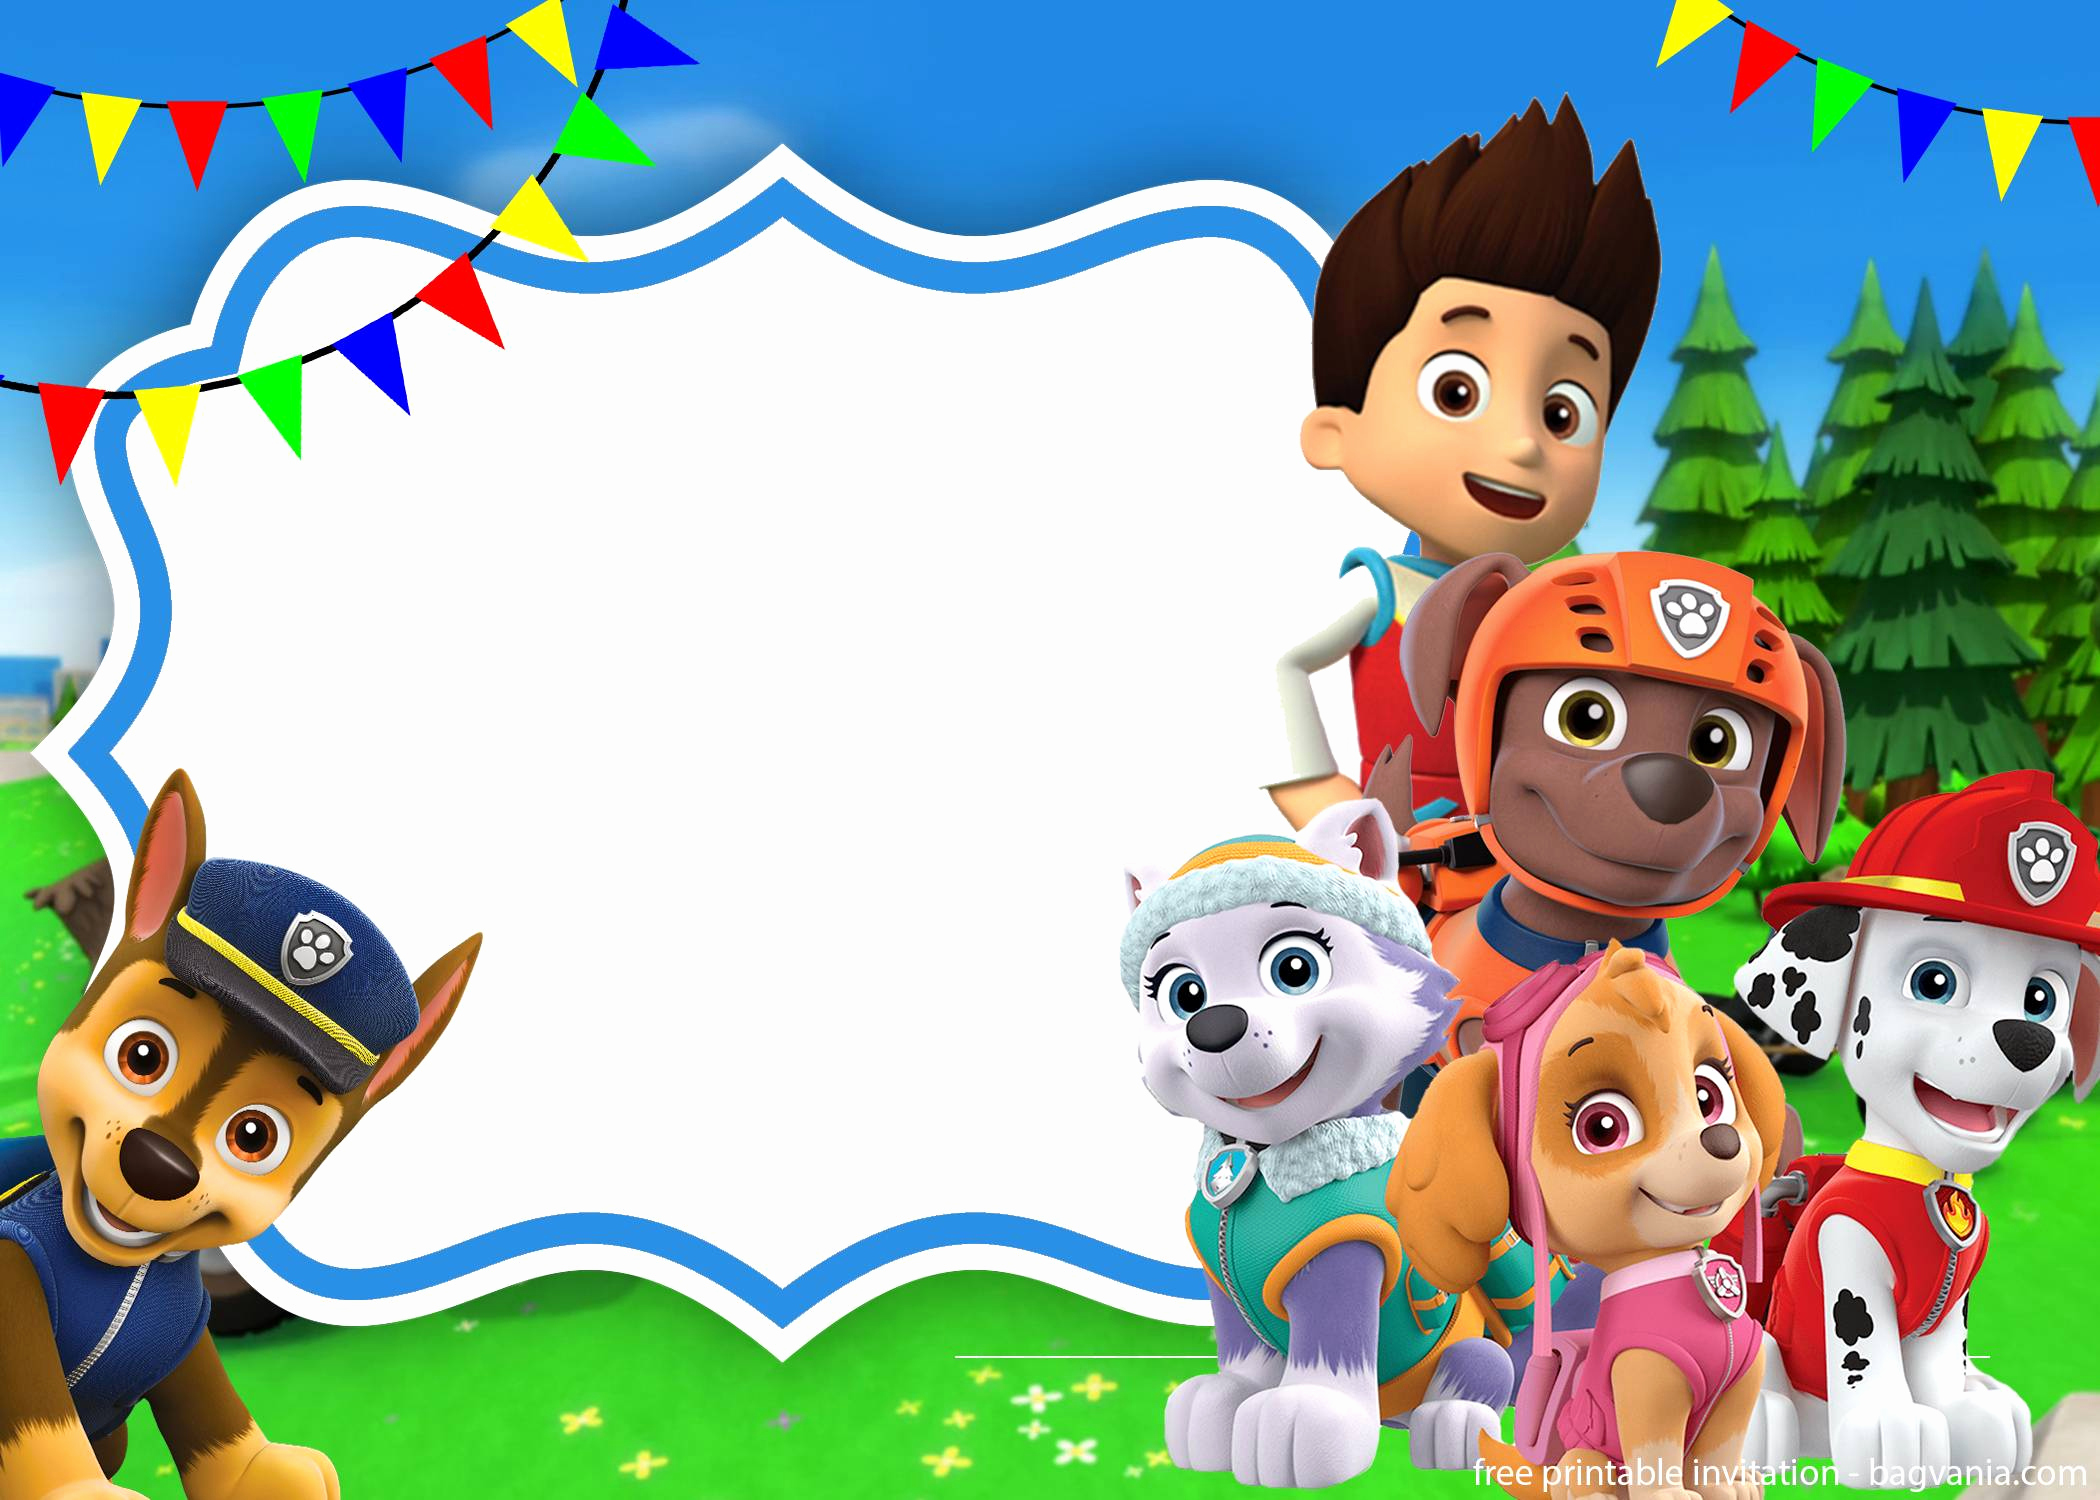 Paw Patrol Invitation Template New Paw Patrol Skye Invitation Template for Your Daughter's